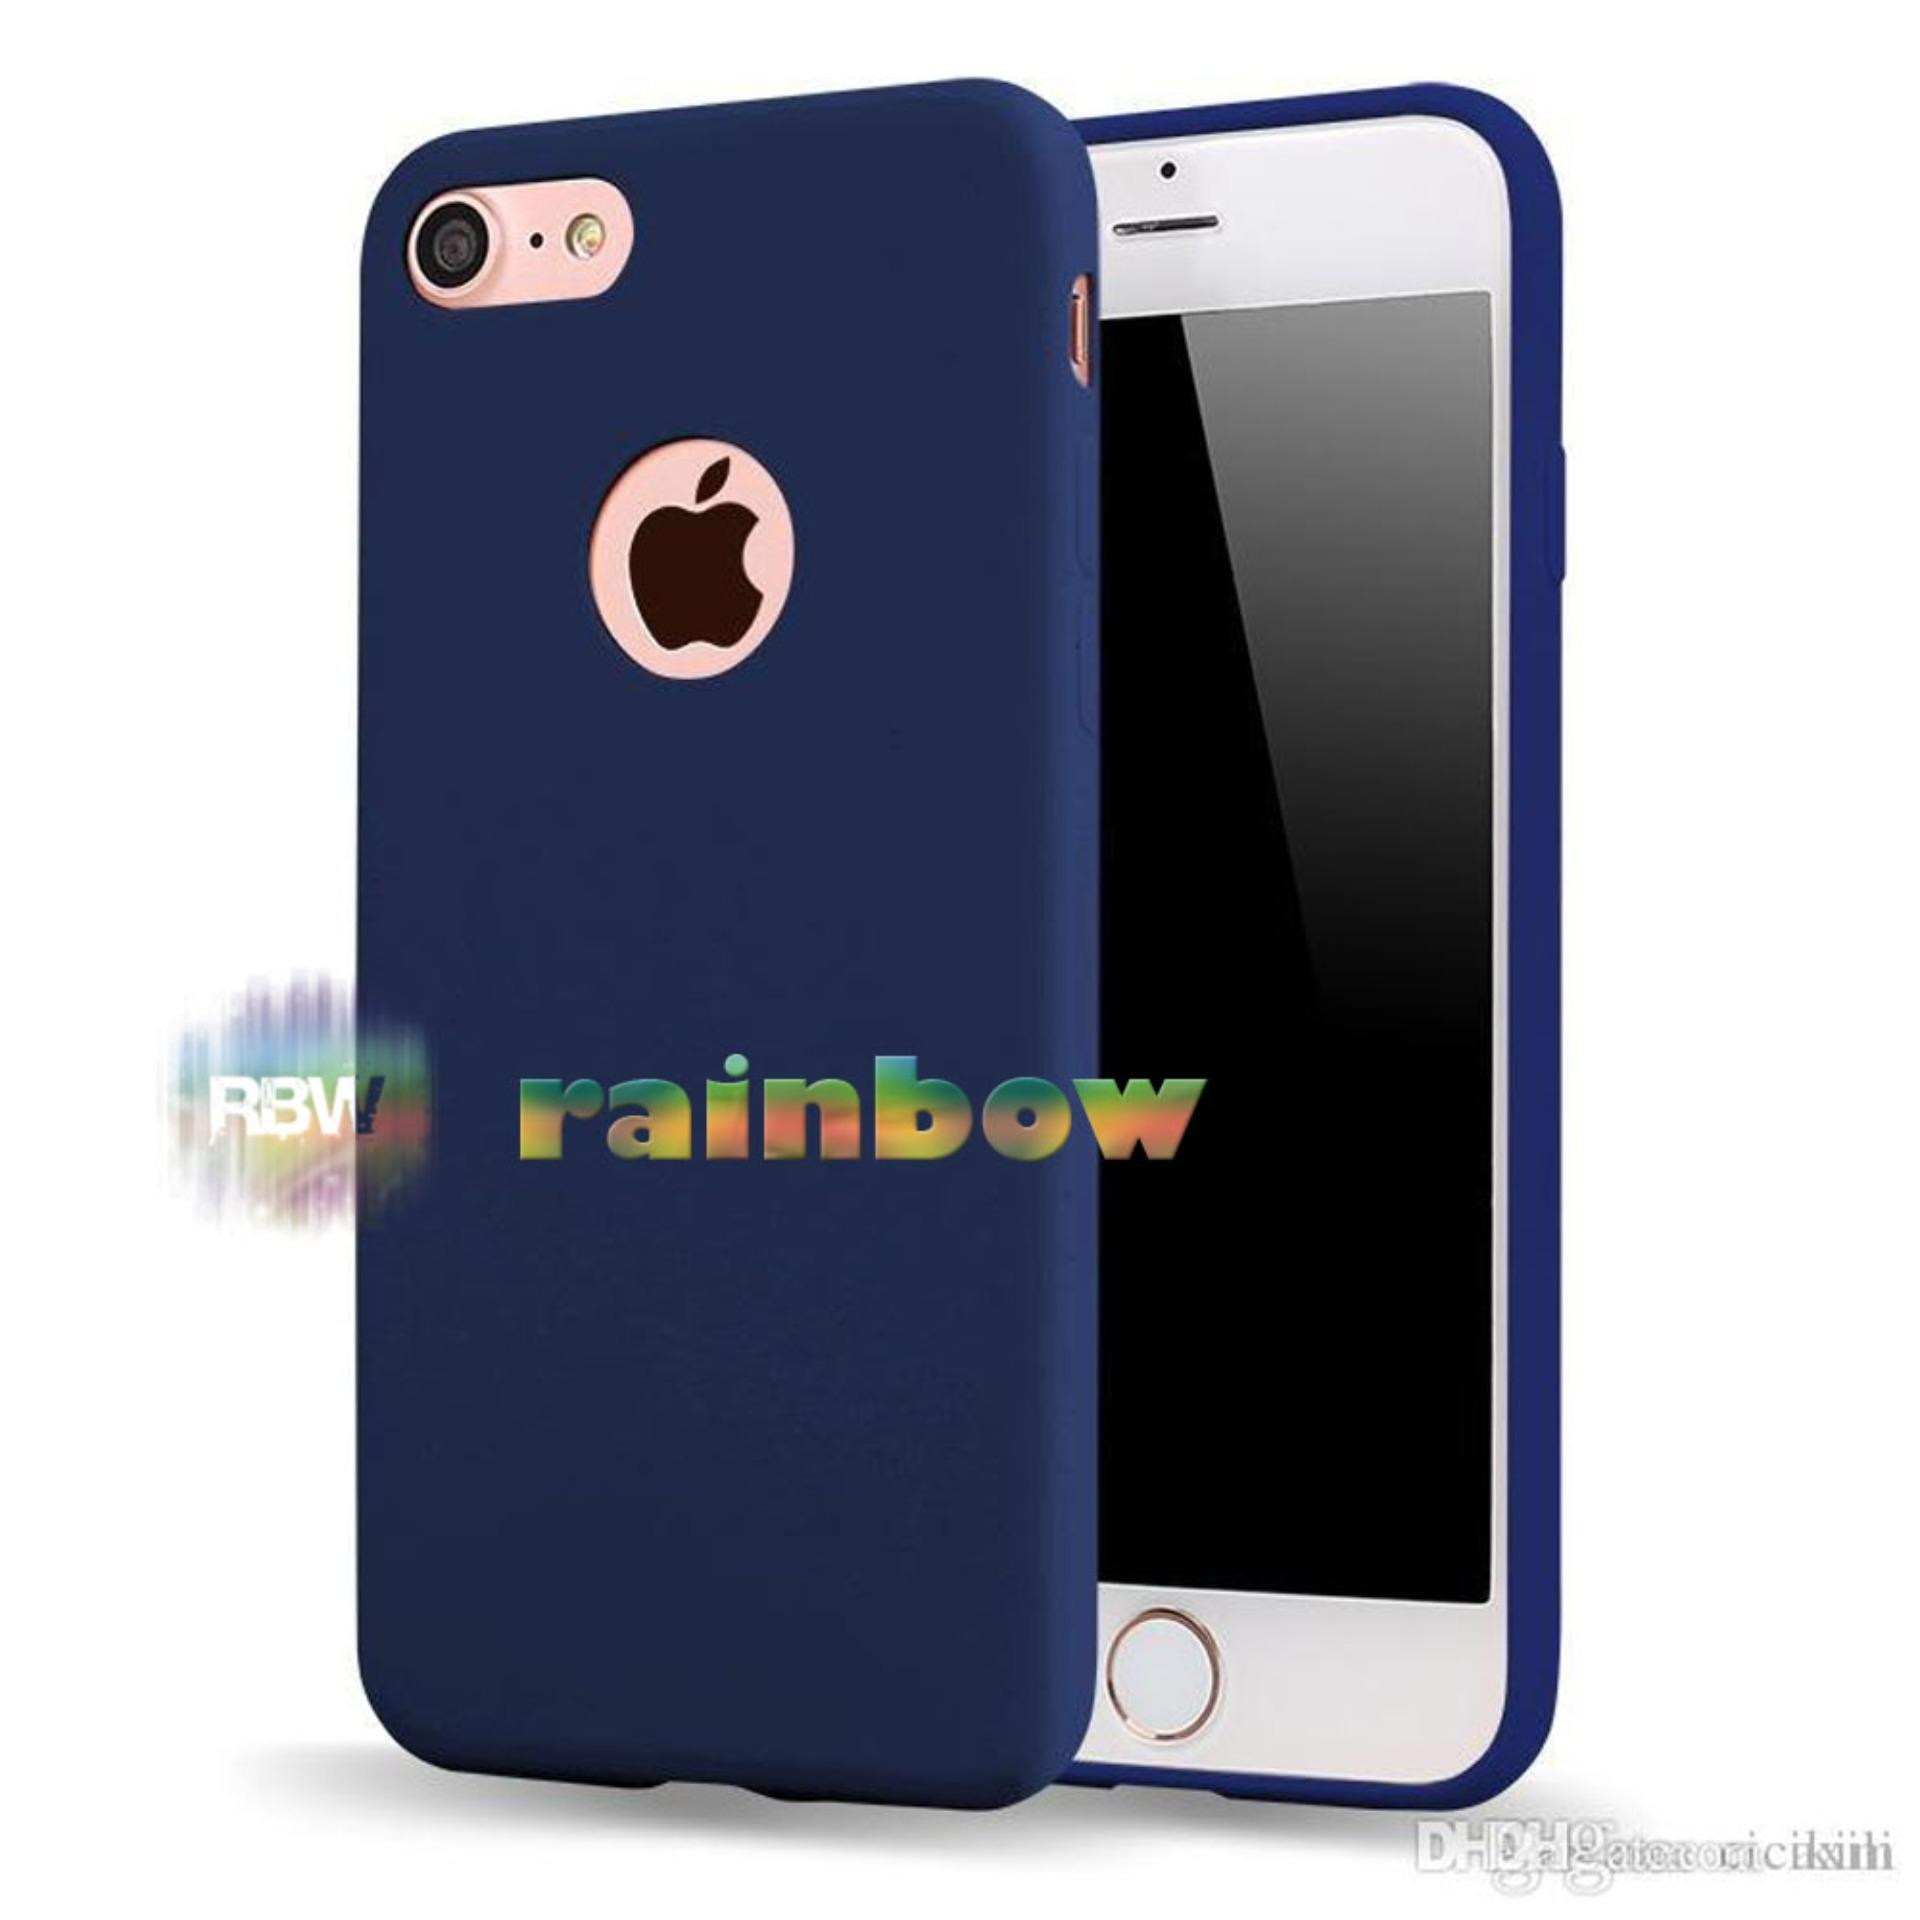 Lize Apple Iphone6 / Iphone 6 / Iphone 6G / Iphone 6S Ori Ukuran 4.7 inch / Softshell / Jelly Case / Soft Case / Soft Back Case / Silicone / Silicon / Silikon / Case Iphone / Case HP / Casing Handphone Iphone 6 - Biru Tua